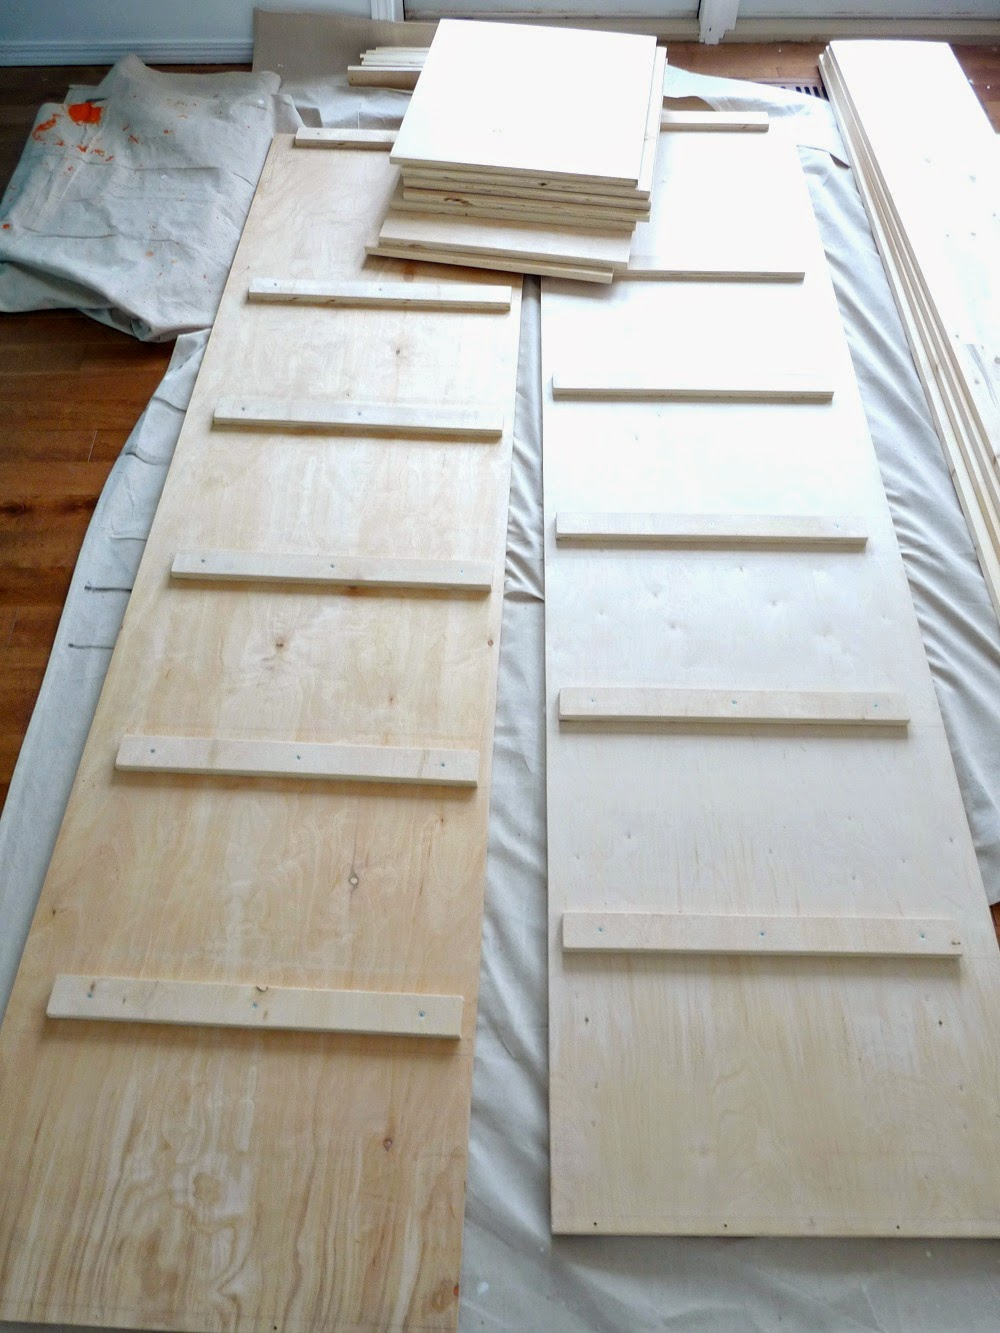 DIY Storage Cabinet with Shelves